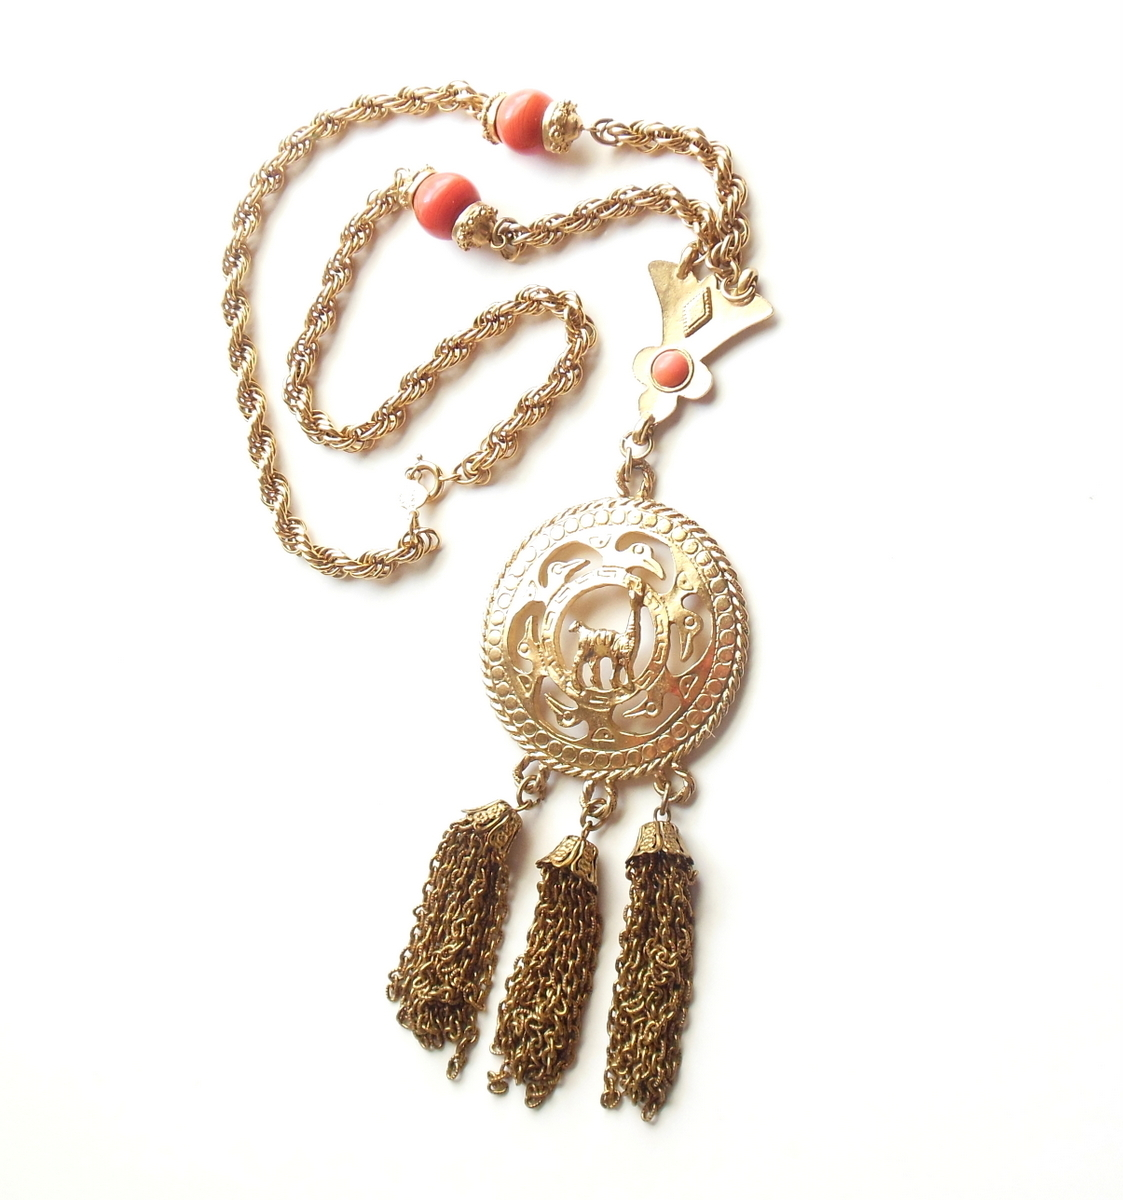 Vintage Accessocraft Pendant Necklace African Safari Giraffe Gold Tone Jewelry